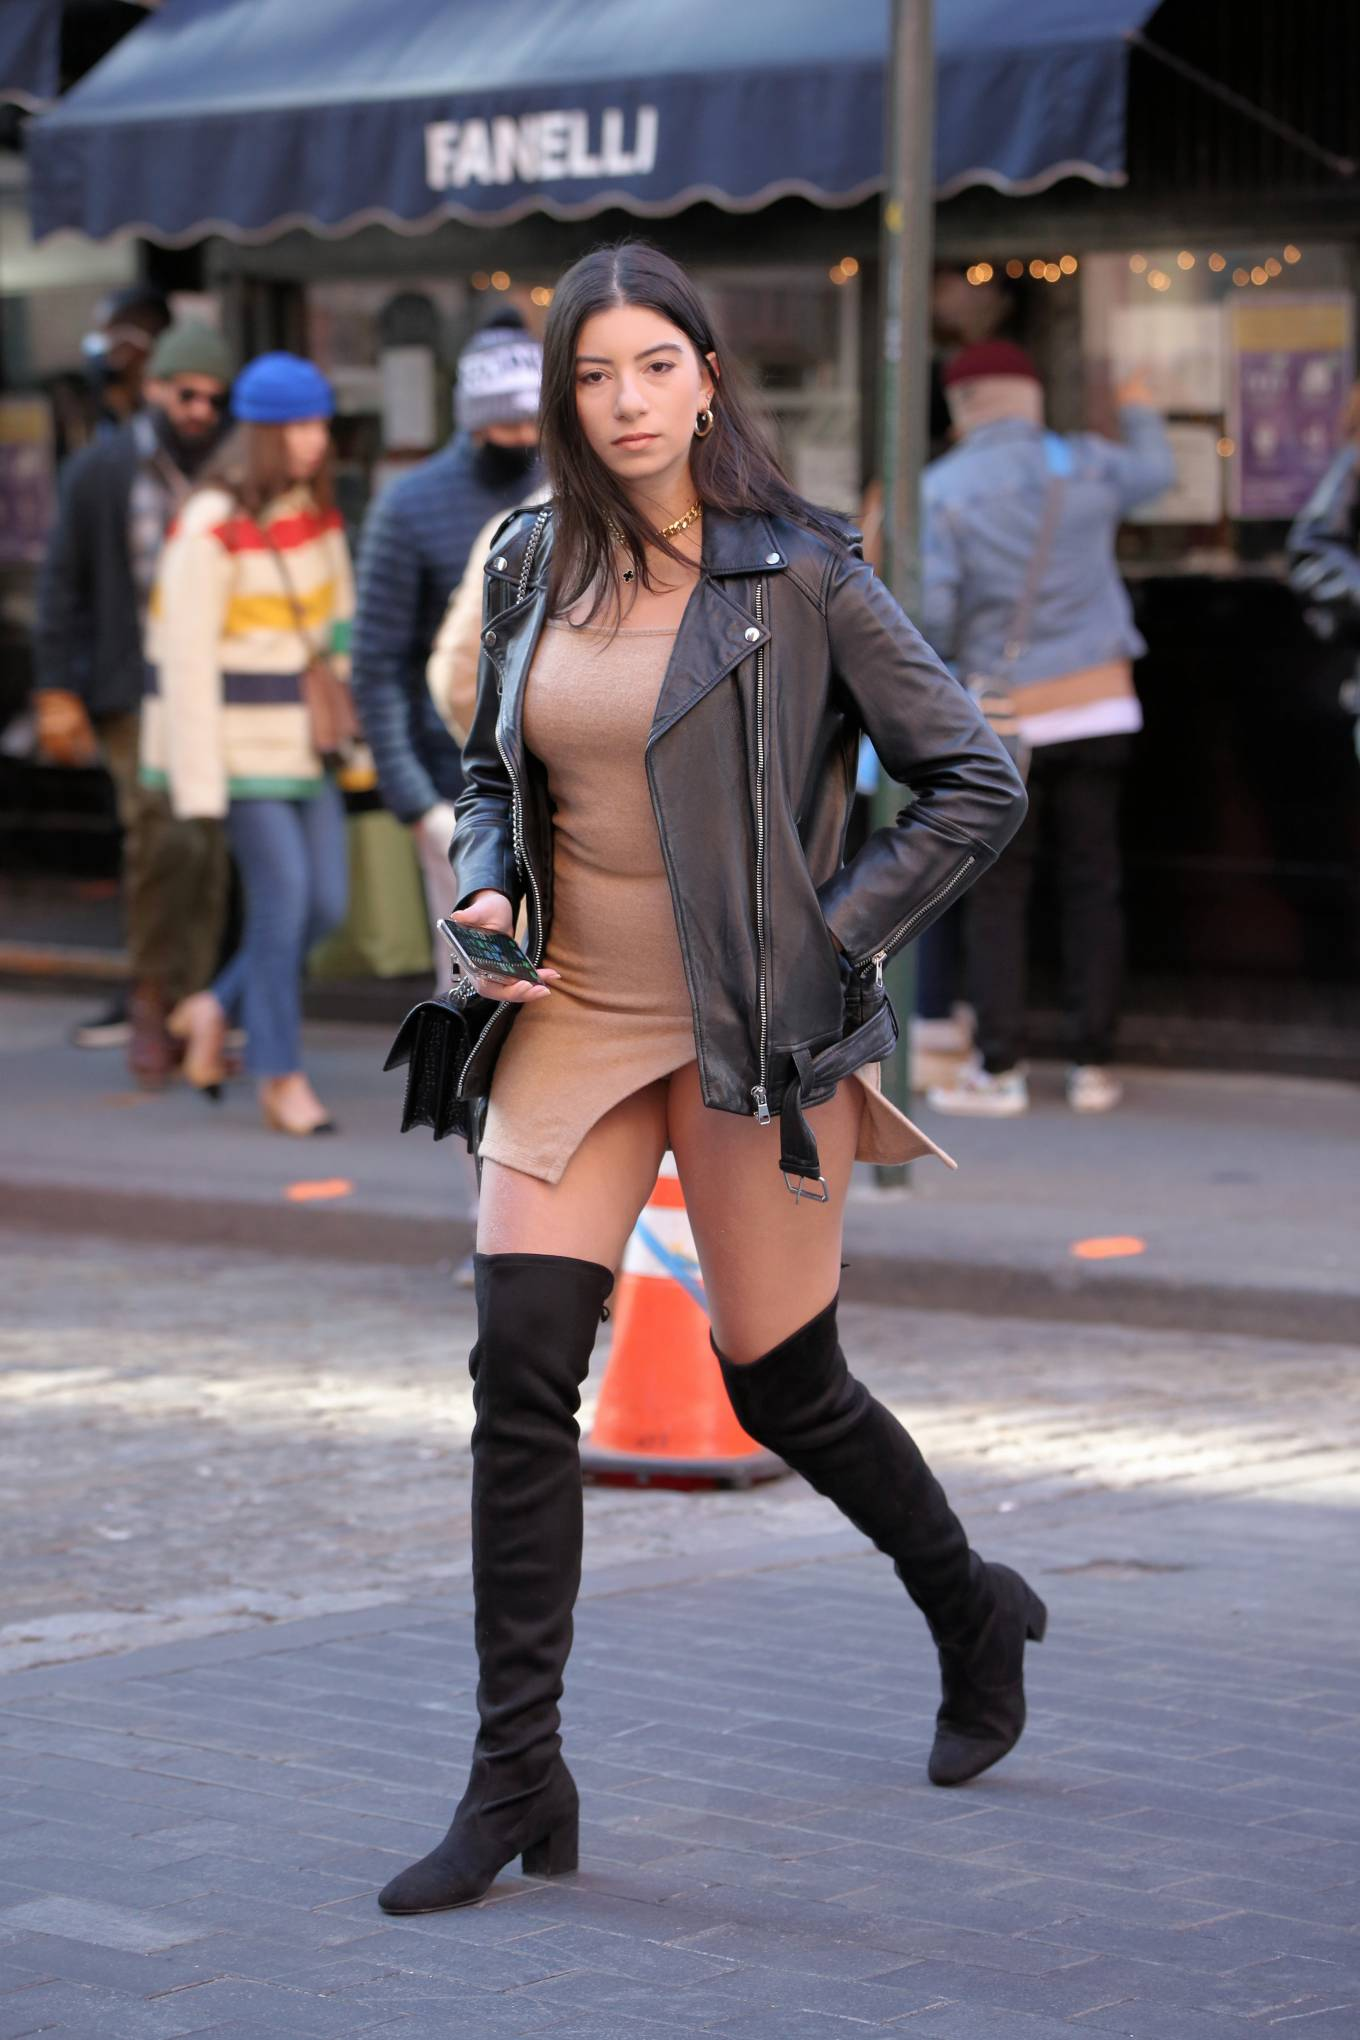 Elif IyiBudar - Out in short revealing dress in Soho in New York